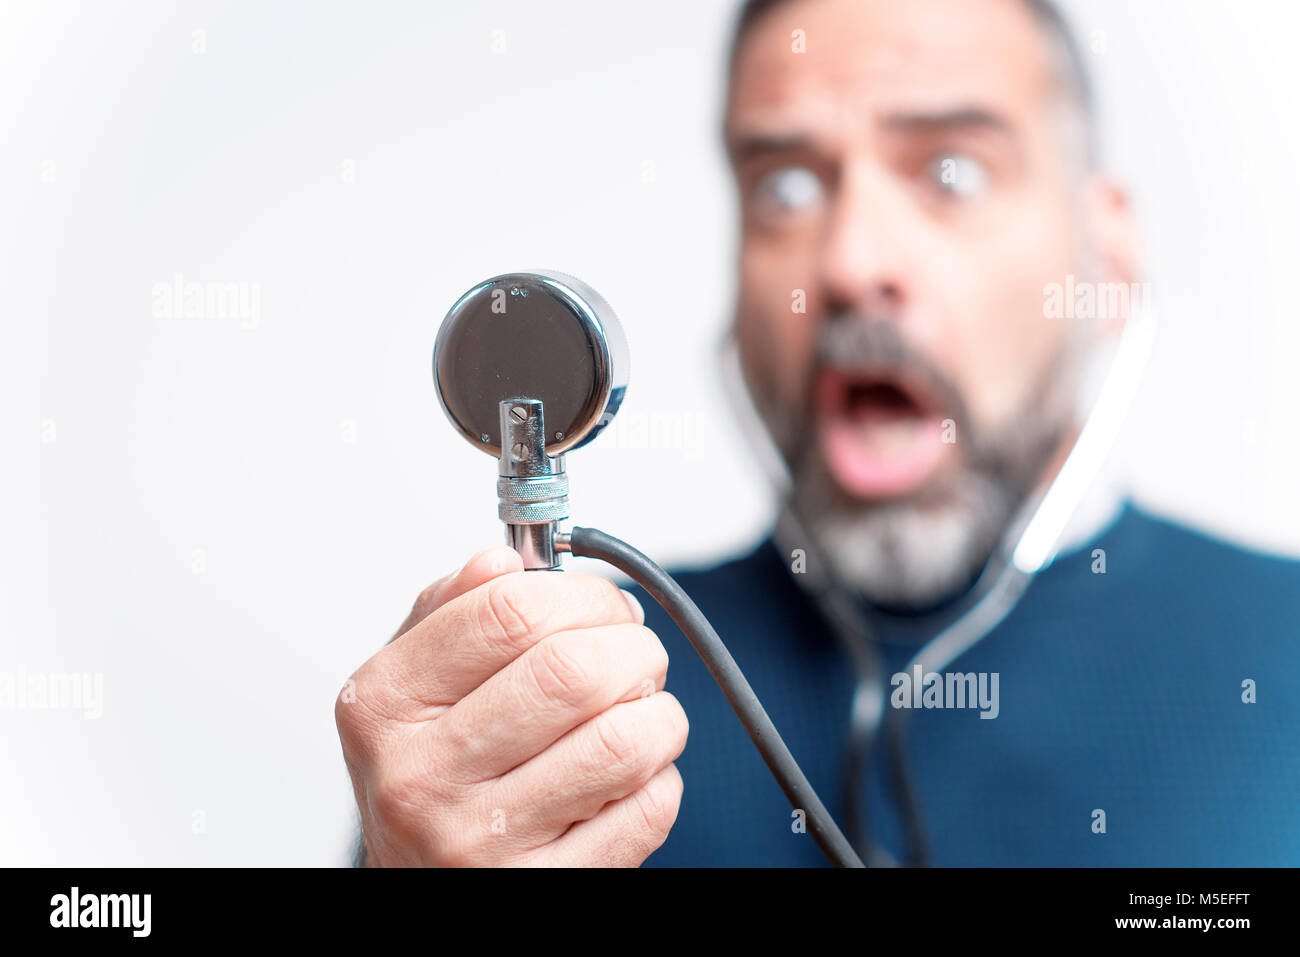 Senior man shocked and outraged with his blood pressure measurement result, studio image - Stock Image